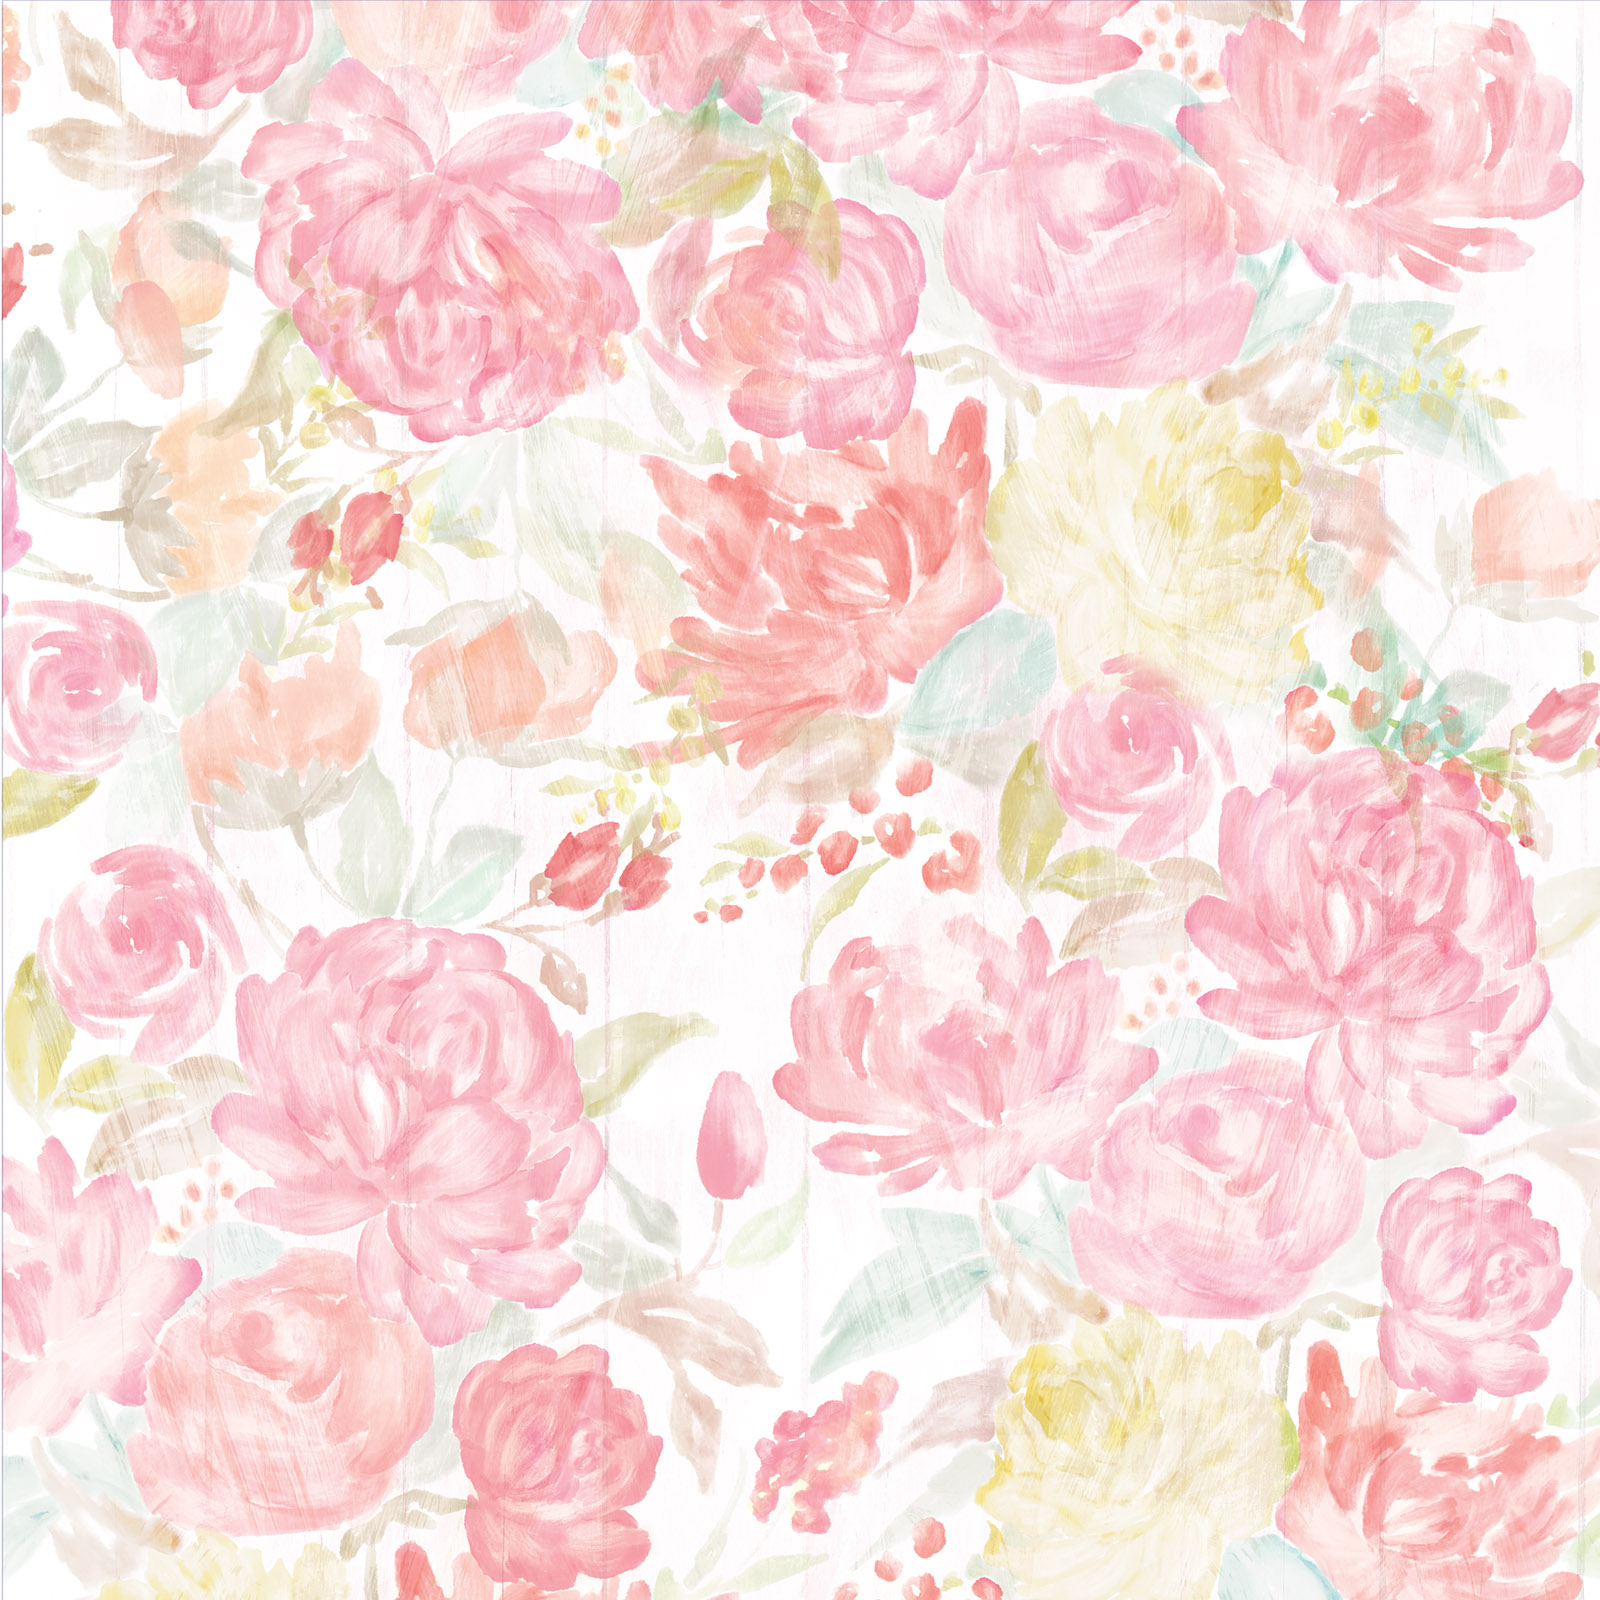 Cute Roses Wallpapers Download Shop For The Watercolor Floral Scrapbook Paper By